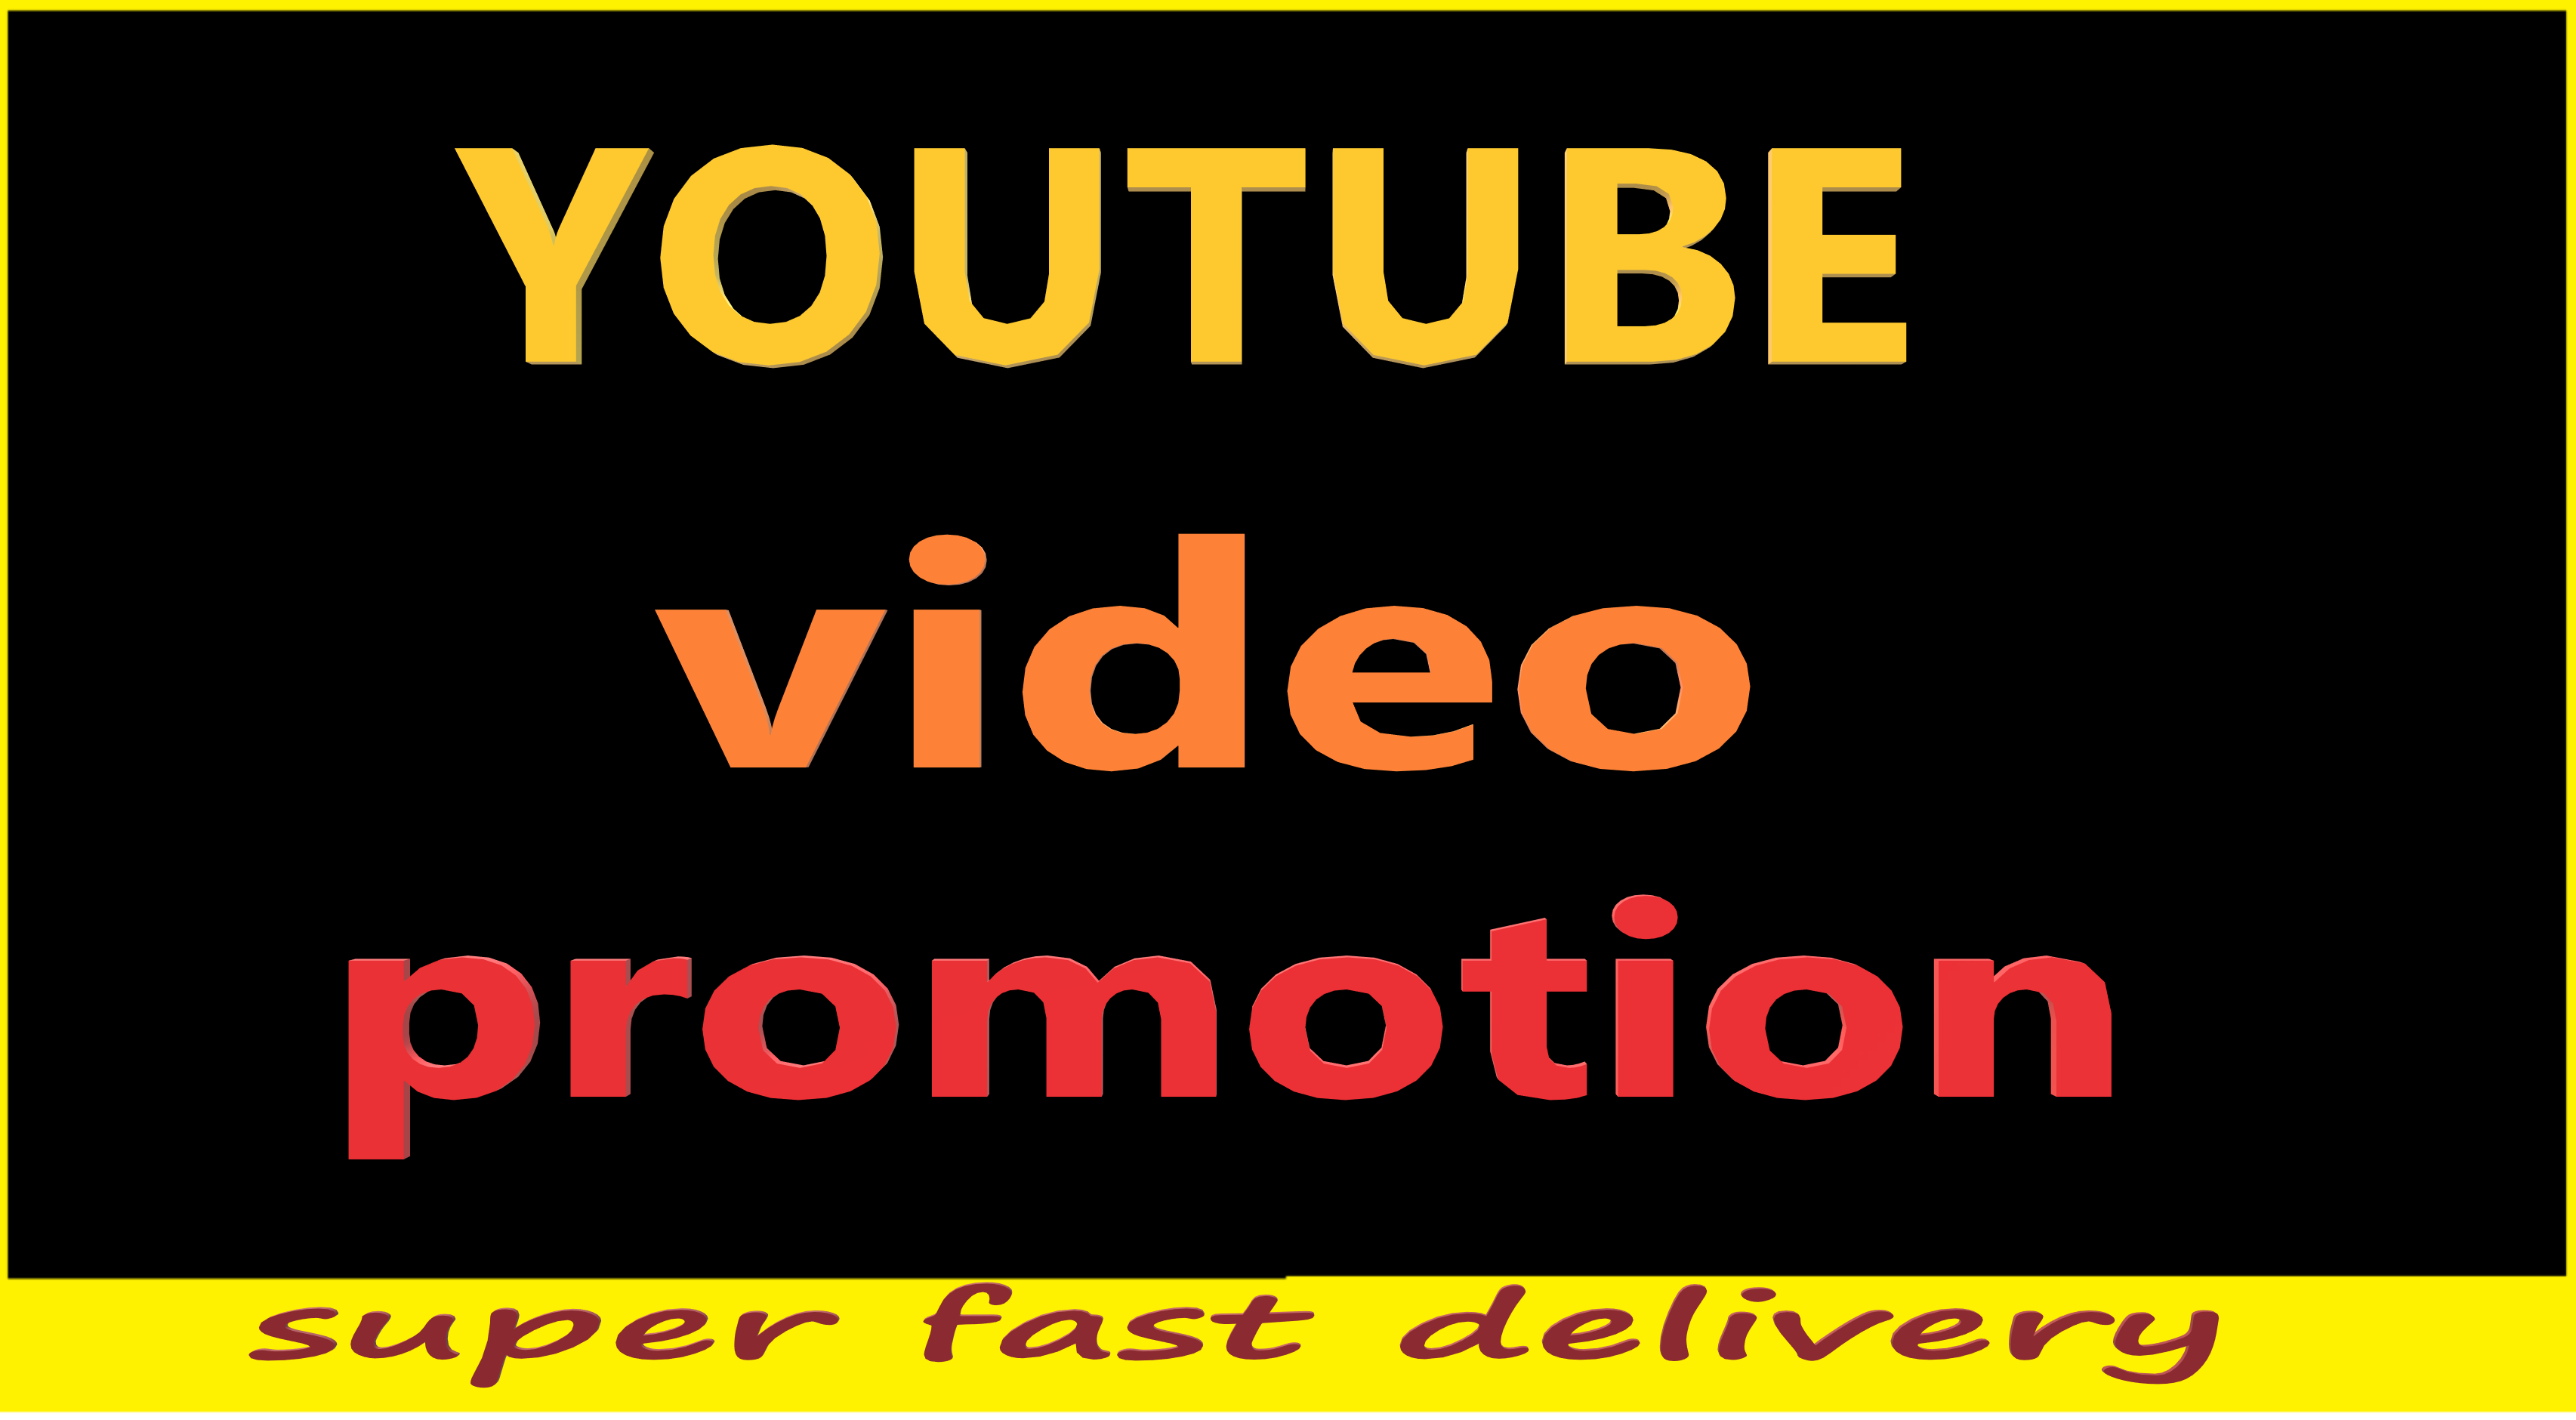 YouTube video promotion viral video and make it video ranking